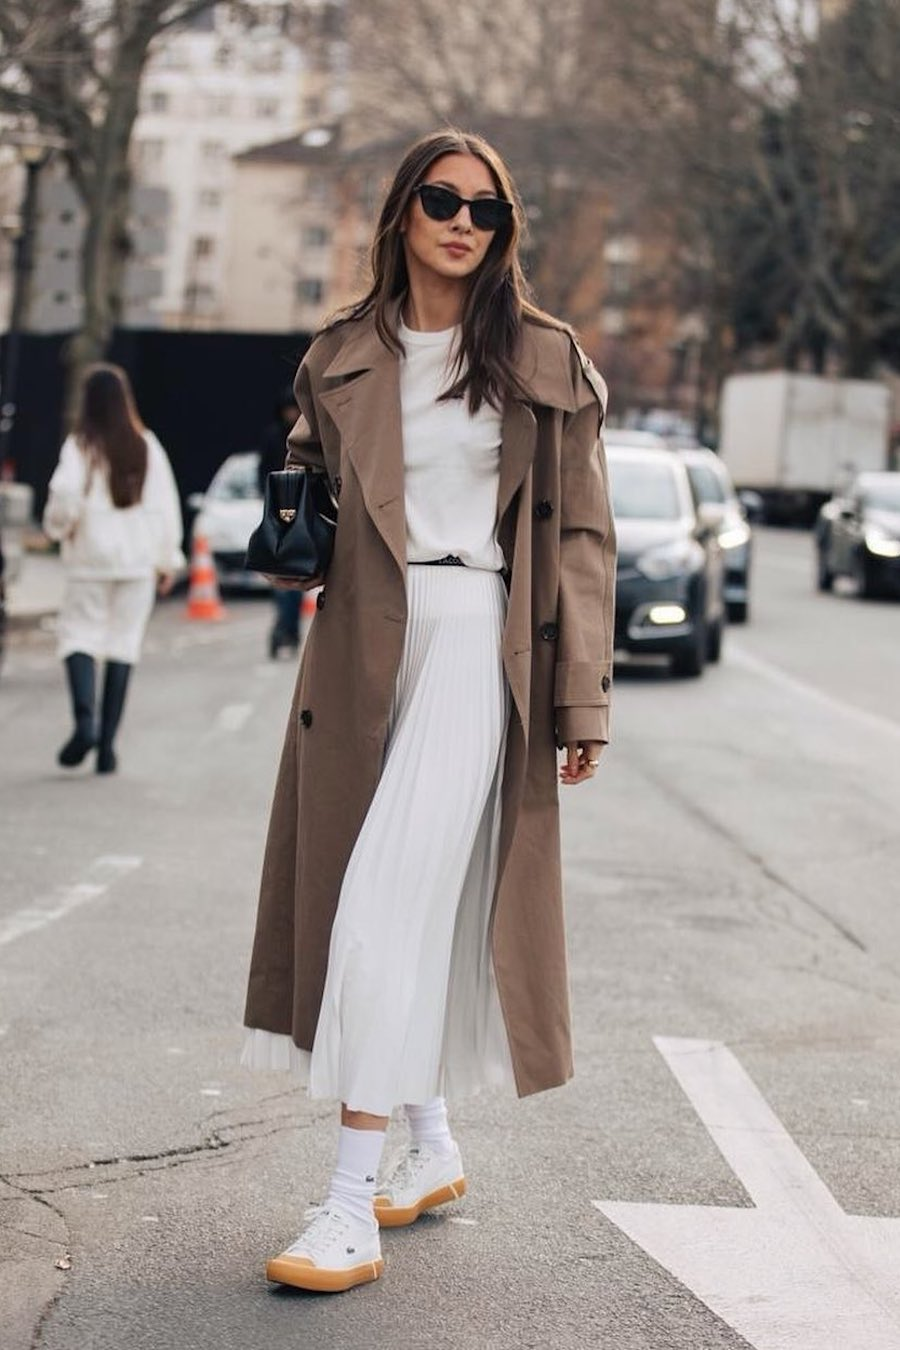 Trench coat outfits for spring 2020